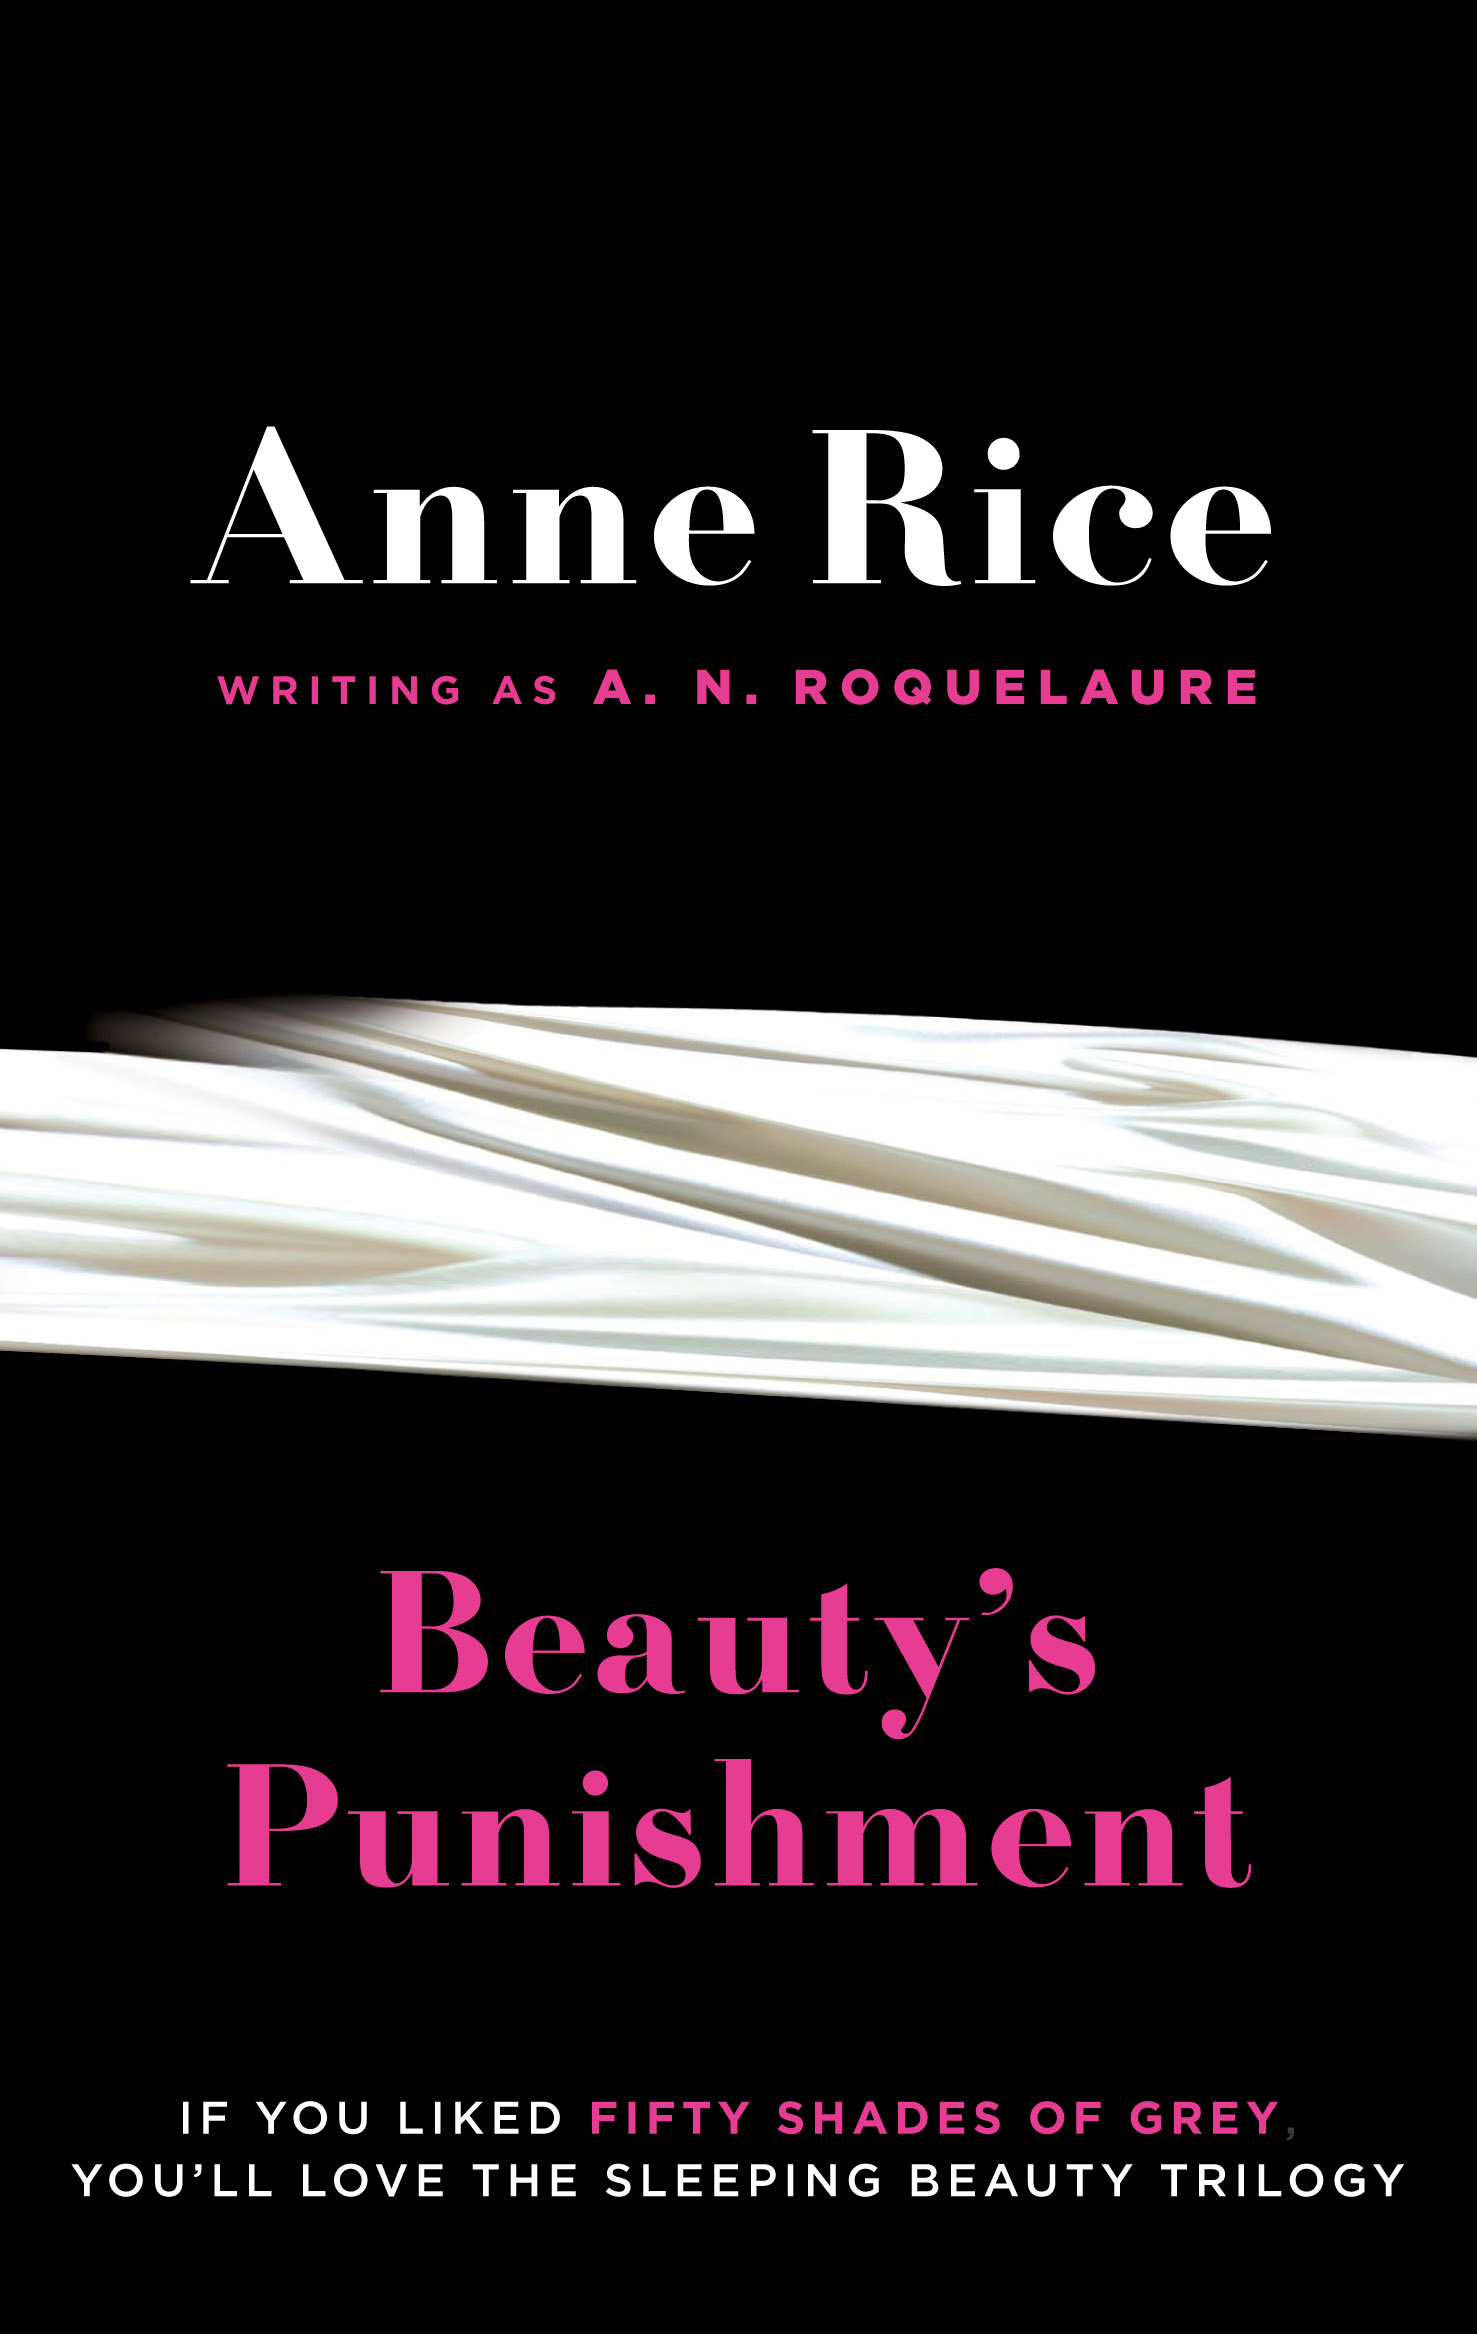 Erotic novels by ann rice